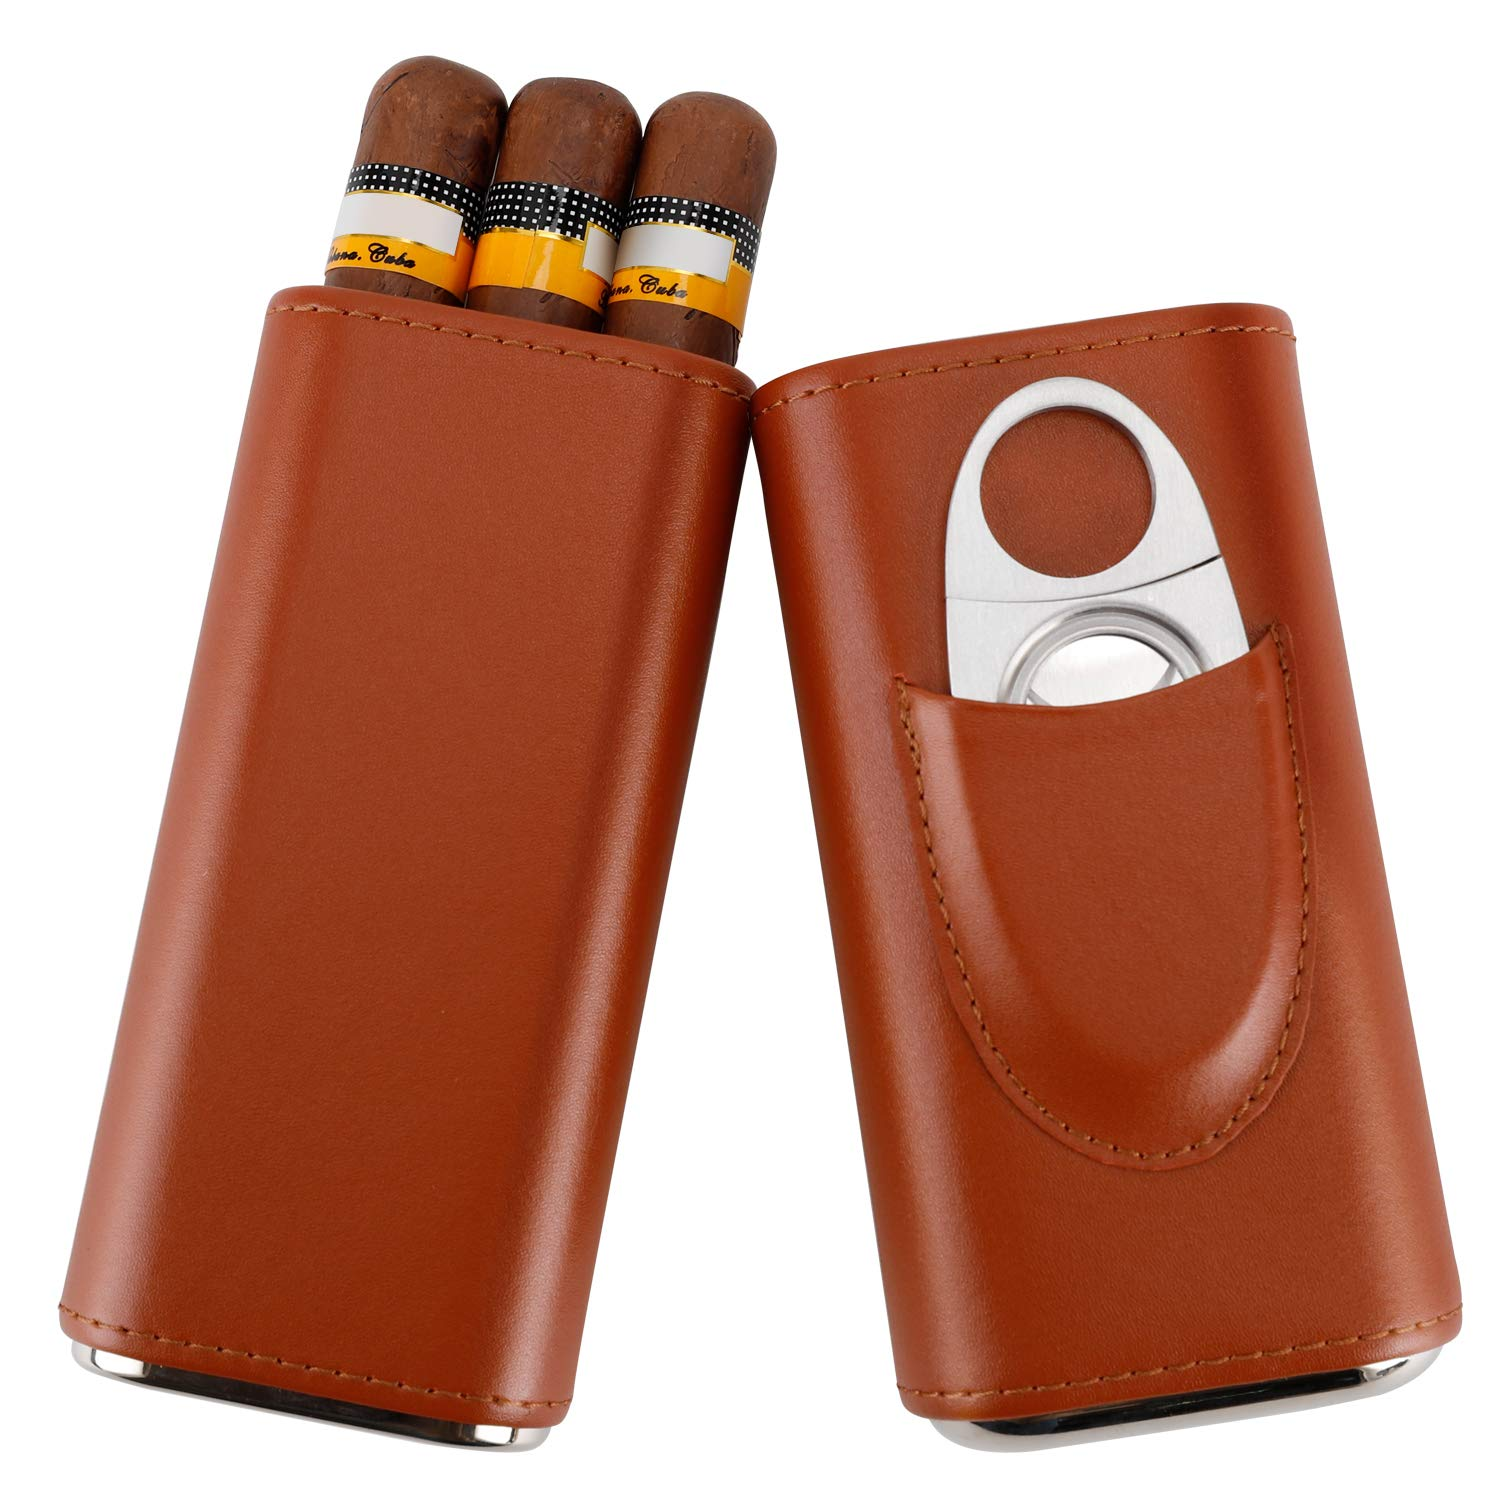 Top Quality Real Leather Cigar Case, Cedar Wood Interior Cigar Humidor with Silver Stainless Steel Cutter by Fortune Nexus